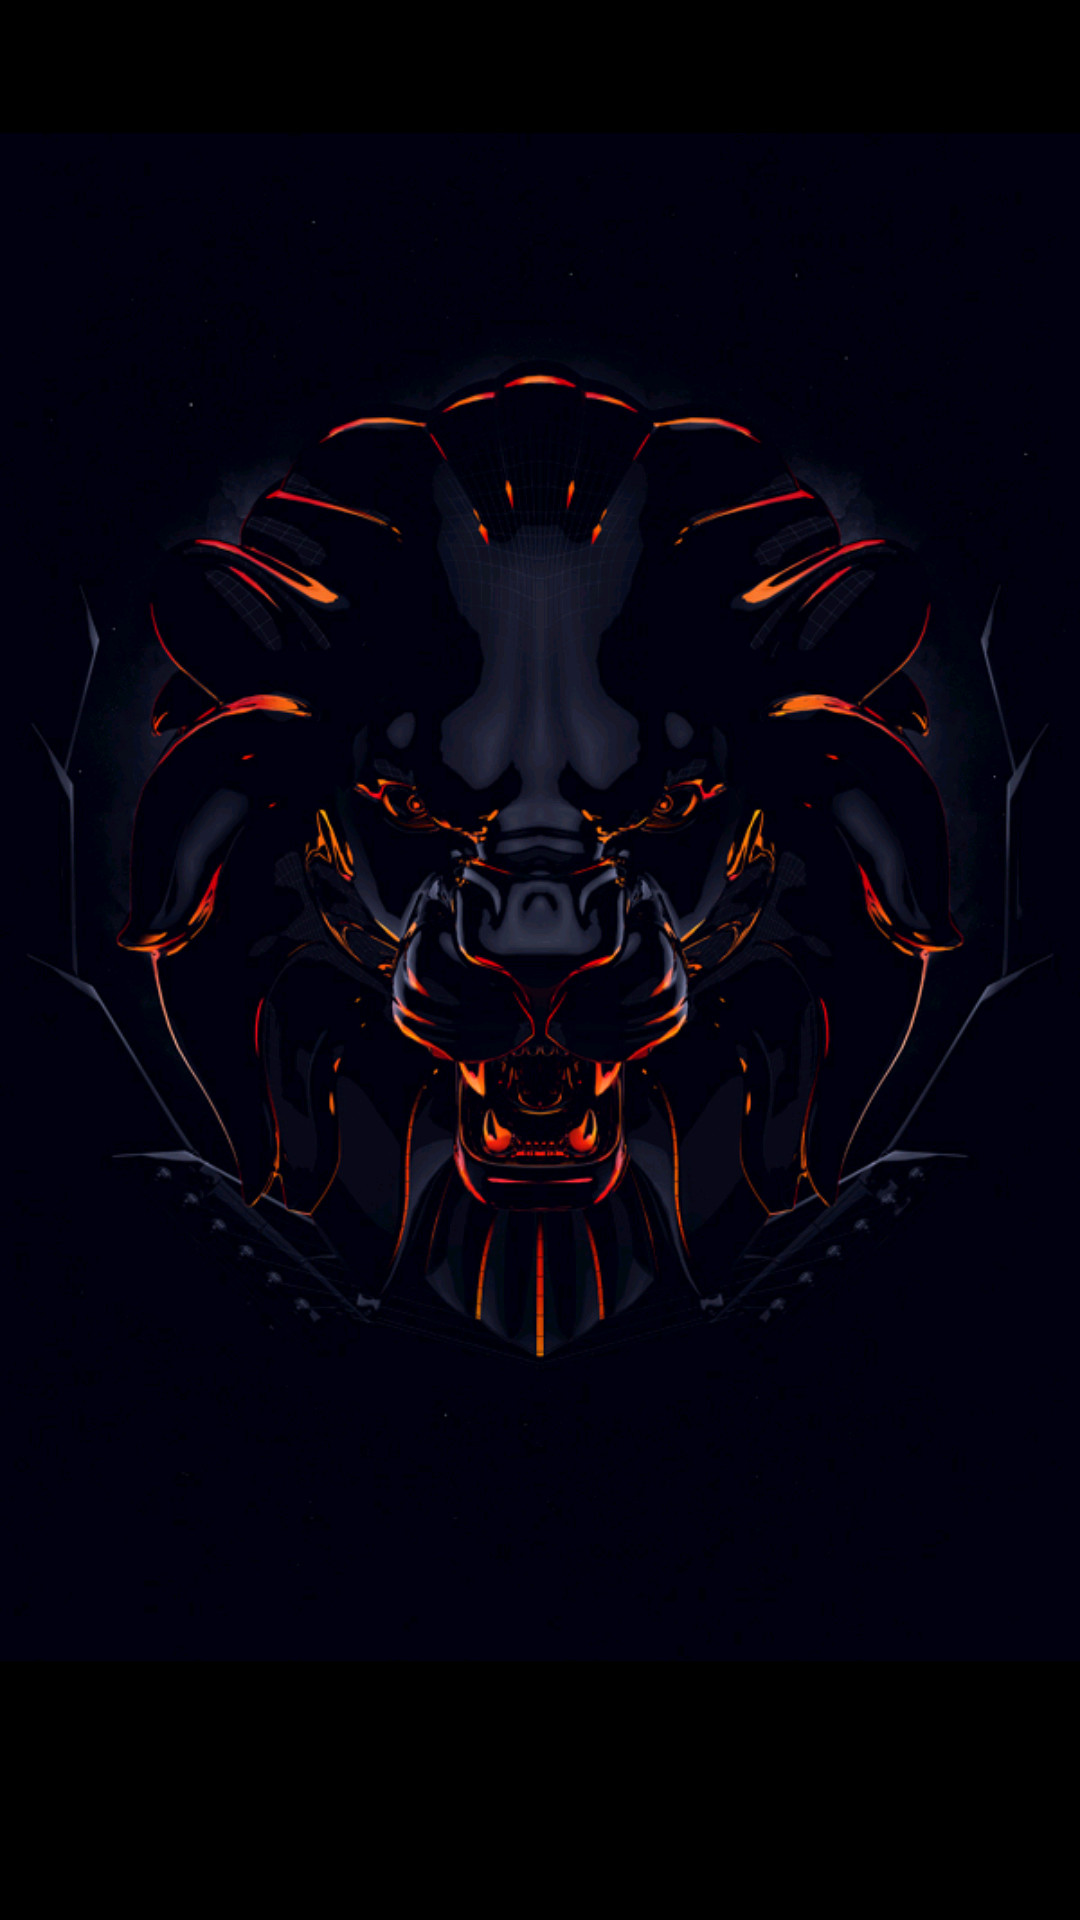 1080x1920 I share you this animated lion's head picture as one of the coolest badass  wallpapers for Android phones. This wallpaper is the #17 of all 40 badass  ...